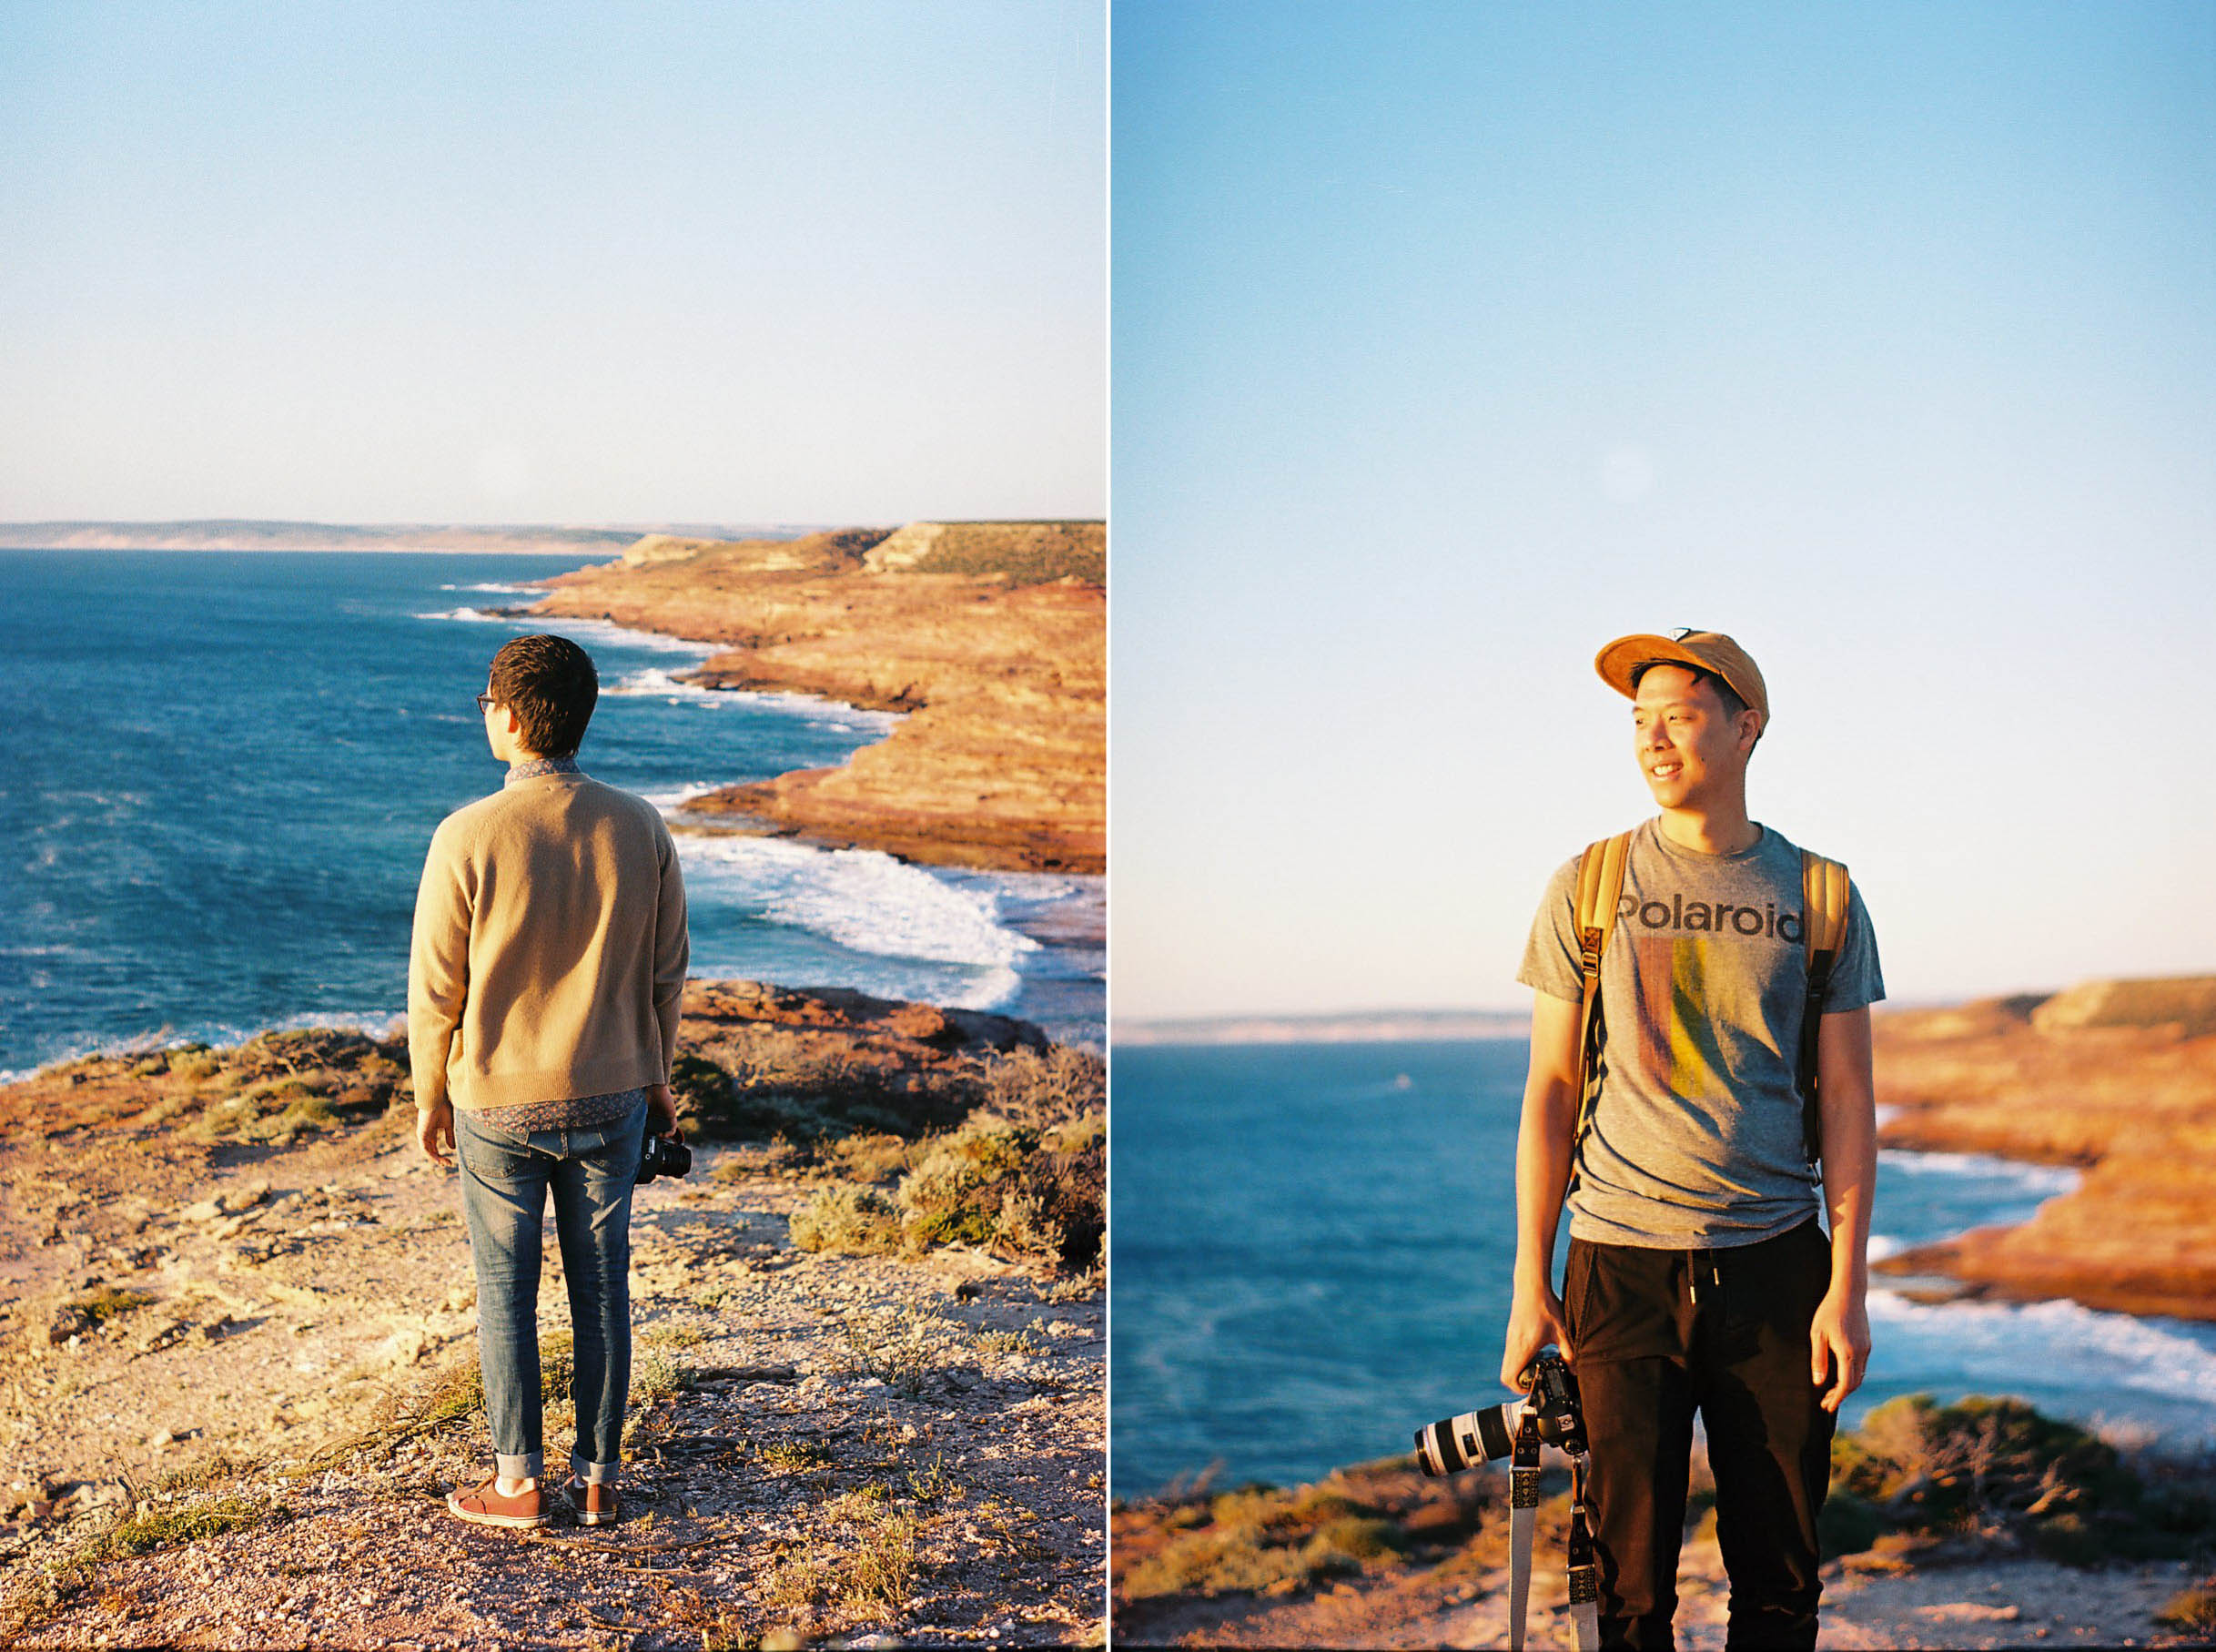 Kalbarri Coastal Walk Portraits Analogue Travel Photographer